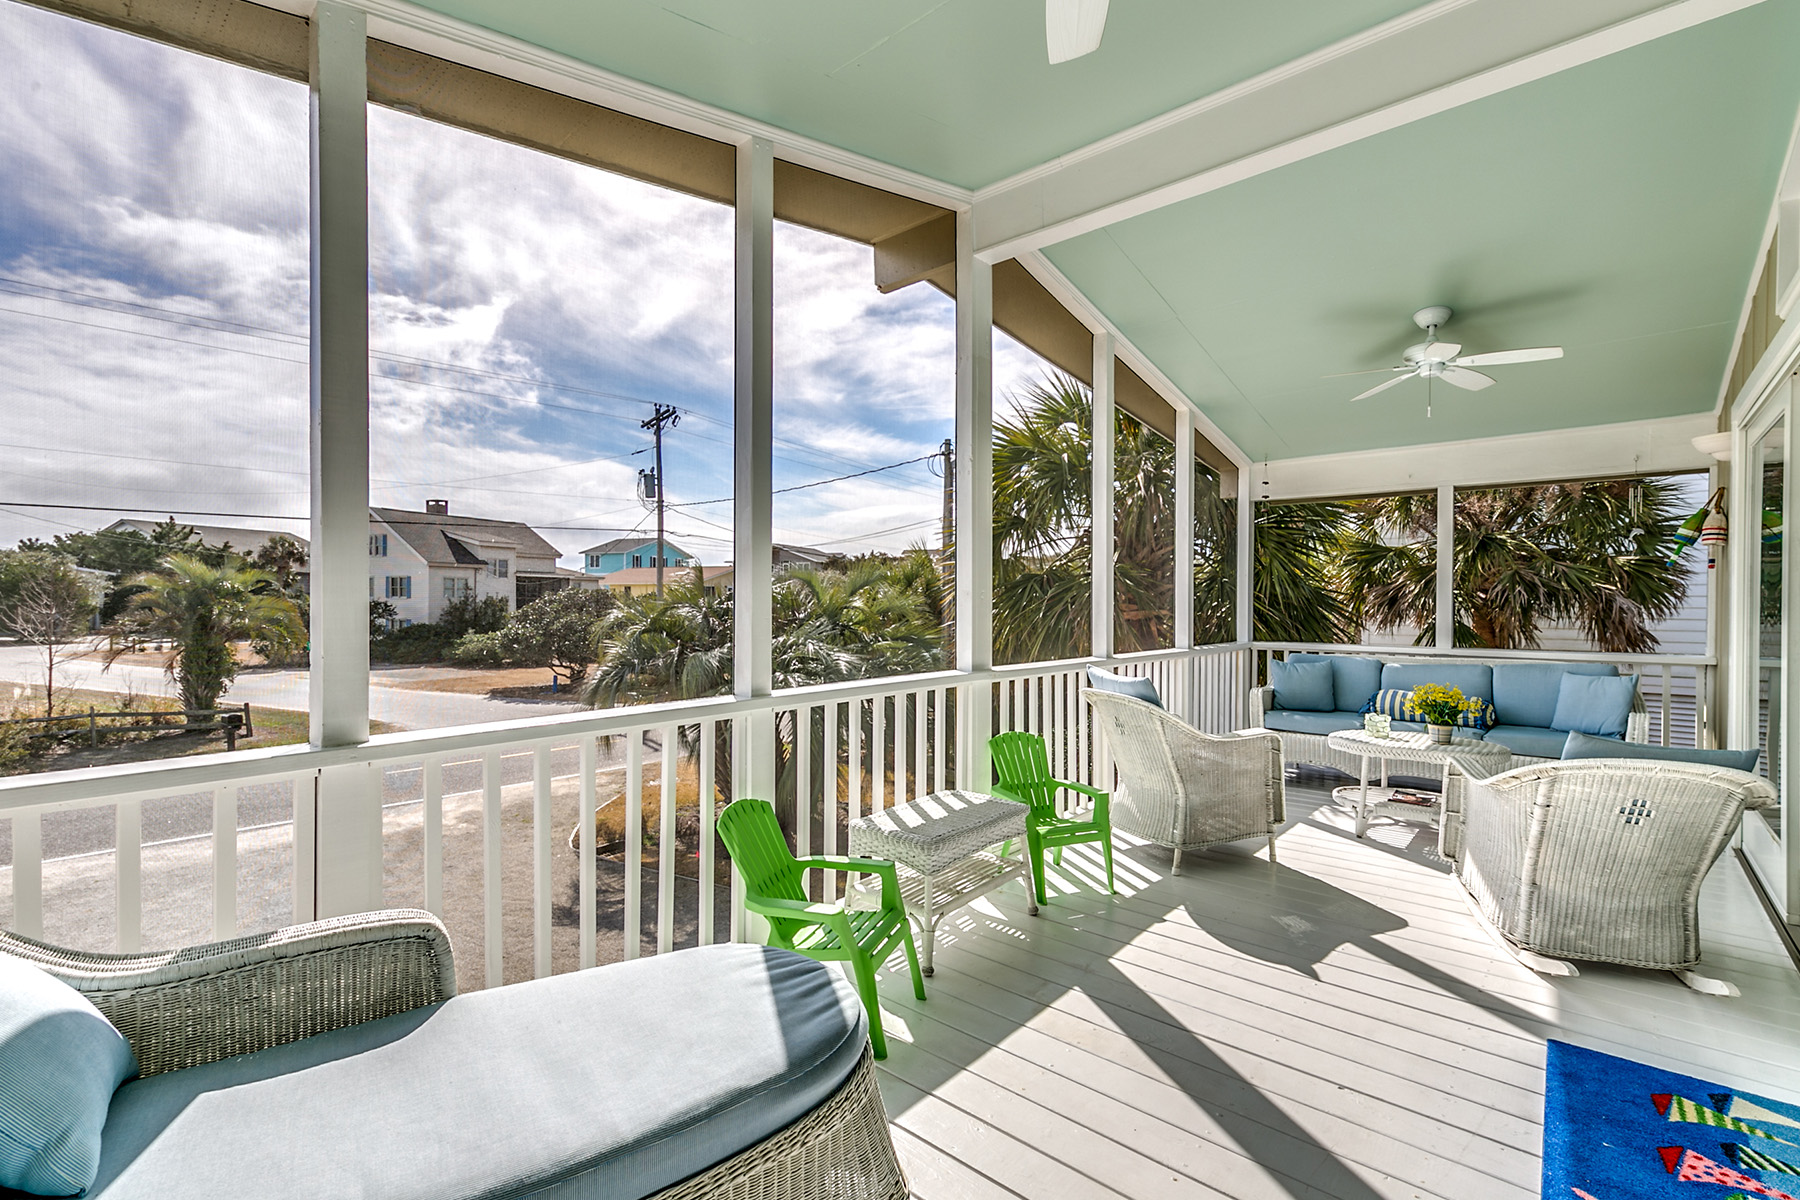 Single Family Home for Sale at 833 Parker Drive, Pawleys Island, SC 29585 833 Parker Drive Pawleys Island, South Carolina 29585 United States